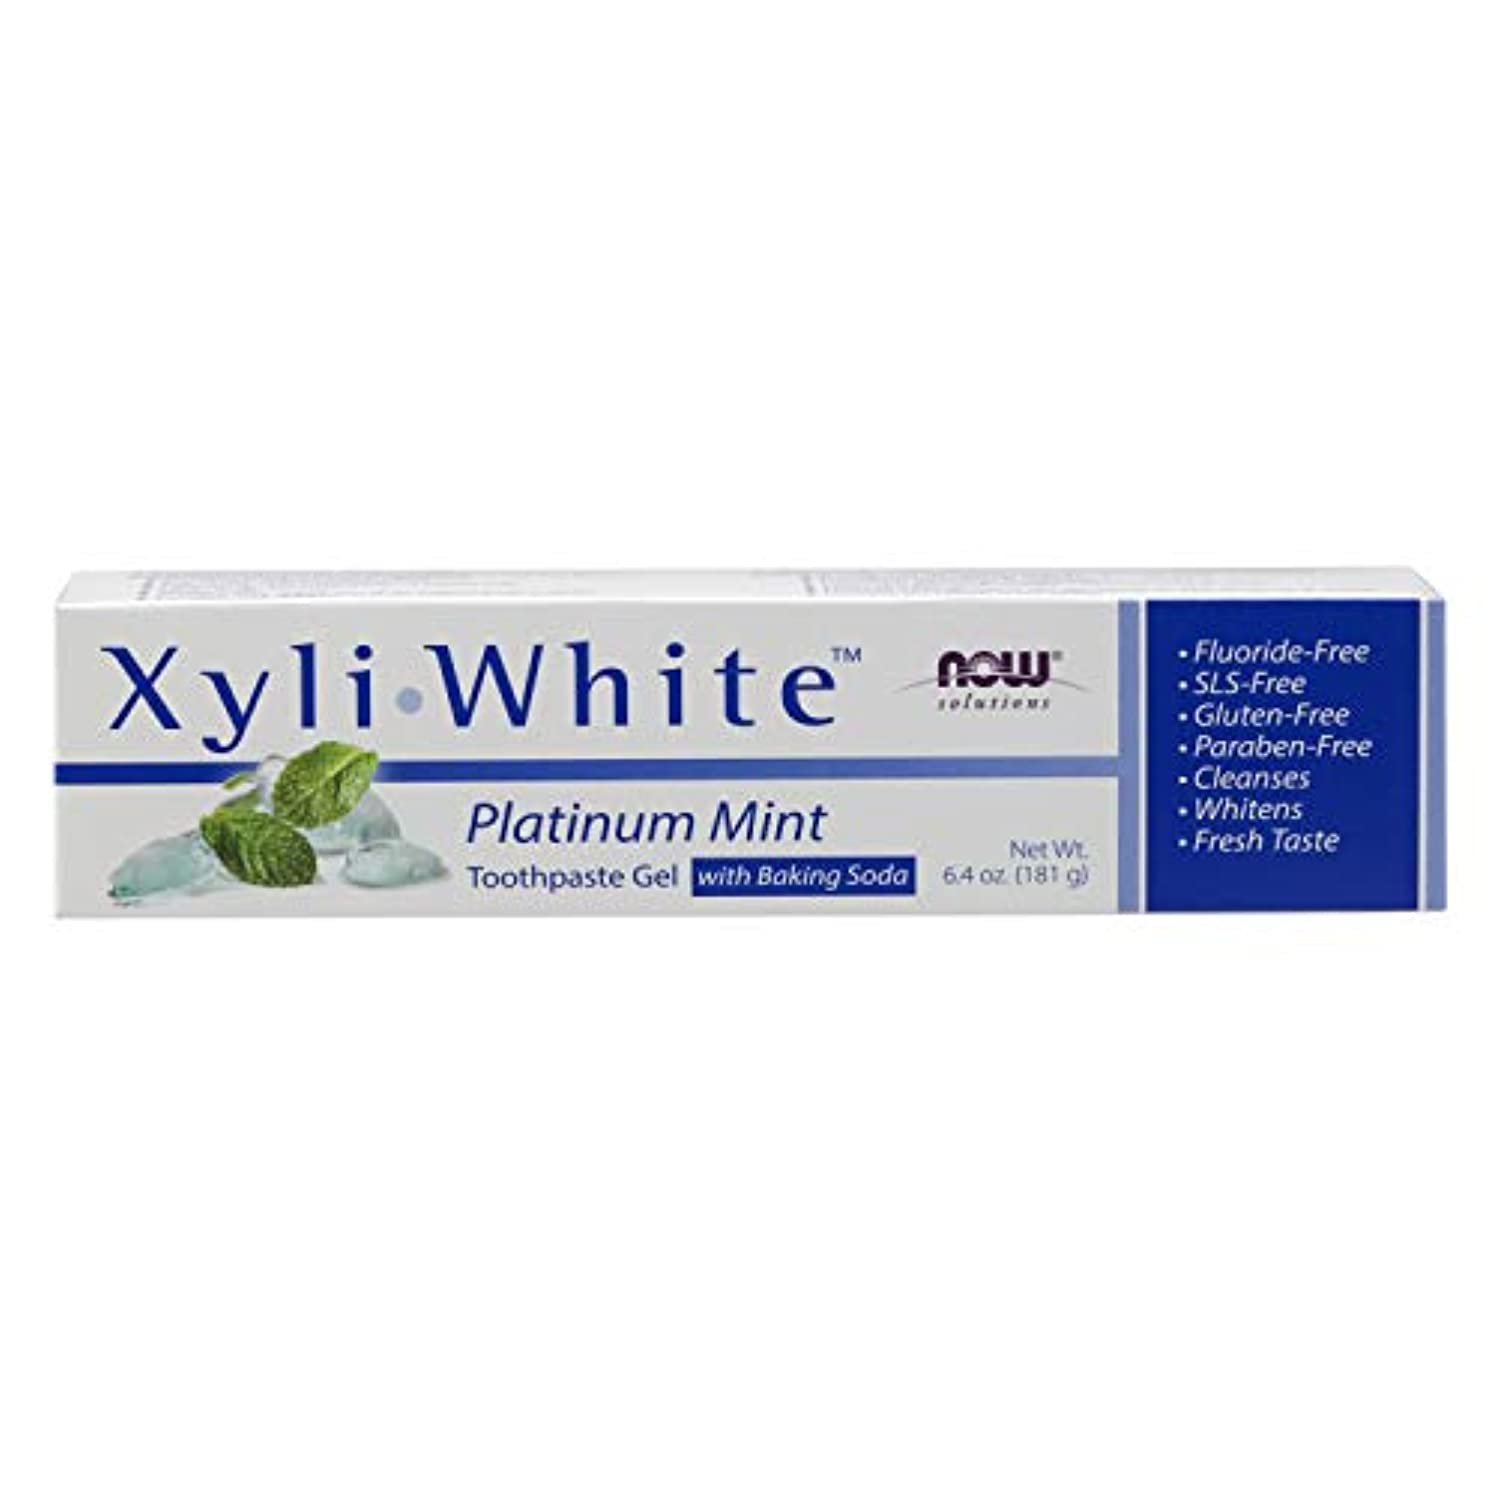 考古学的なスライム免除する海外直送品 Now Foods Xyliwhite Platinum Mint with Baking Soda Toothpaste, 6.4 Oz